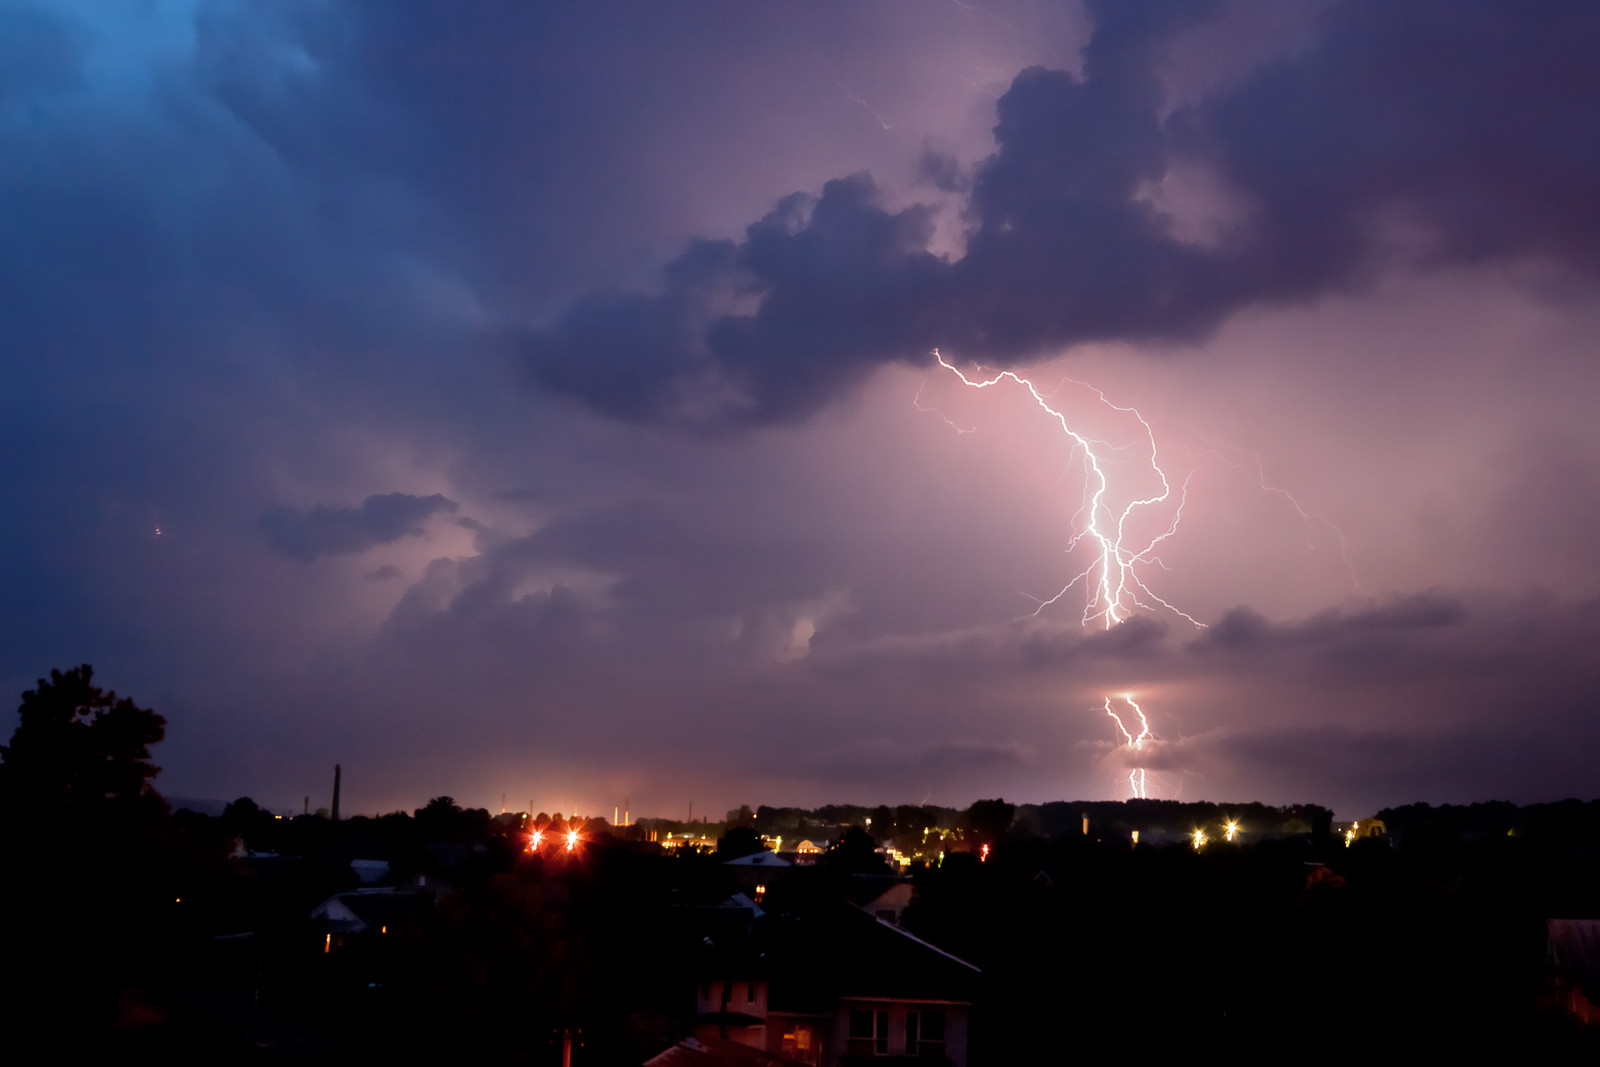 5 Ways to Get Your House Ready for Severe Storms - Storm brewing image